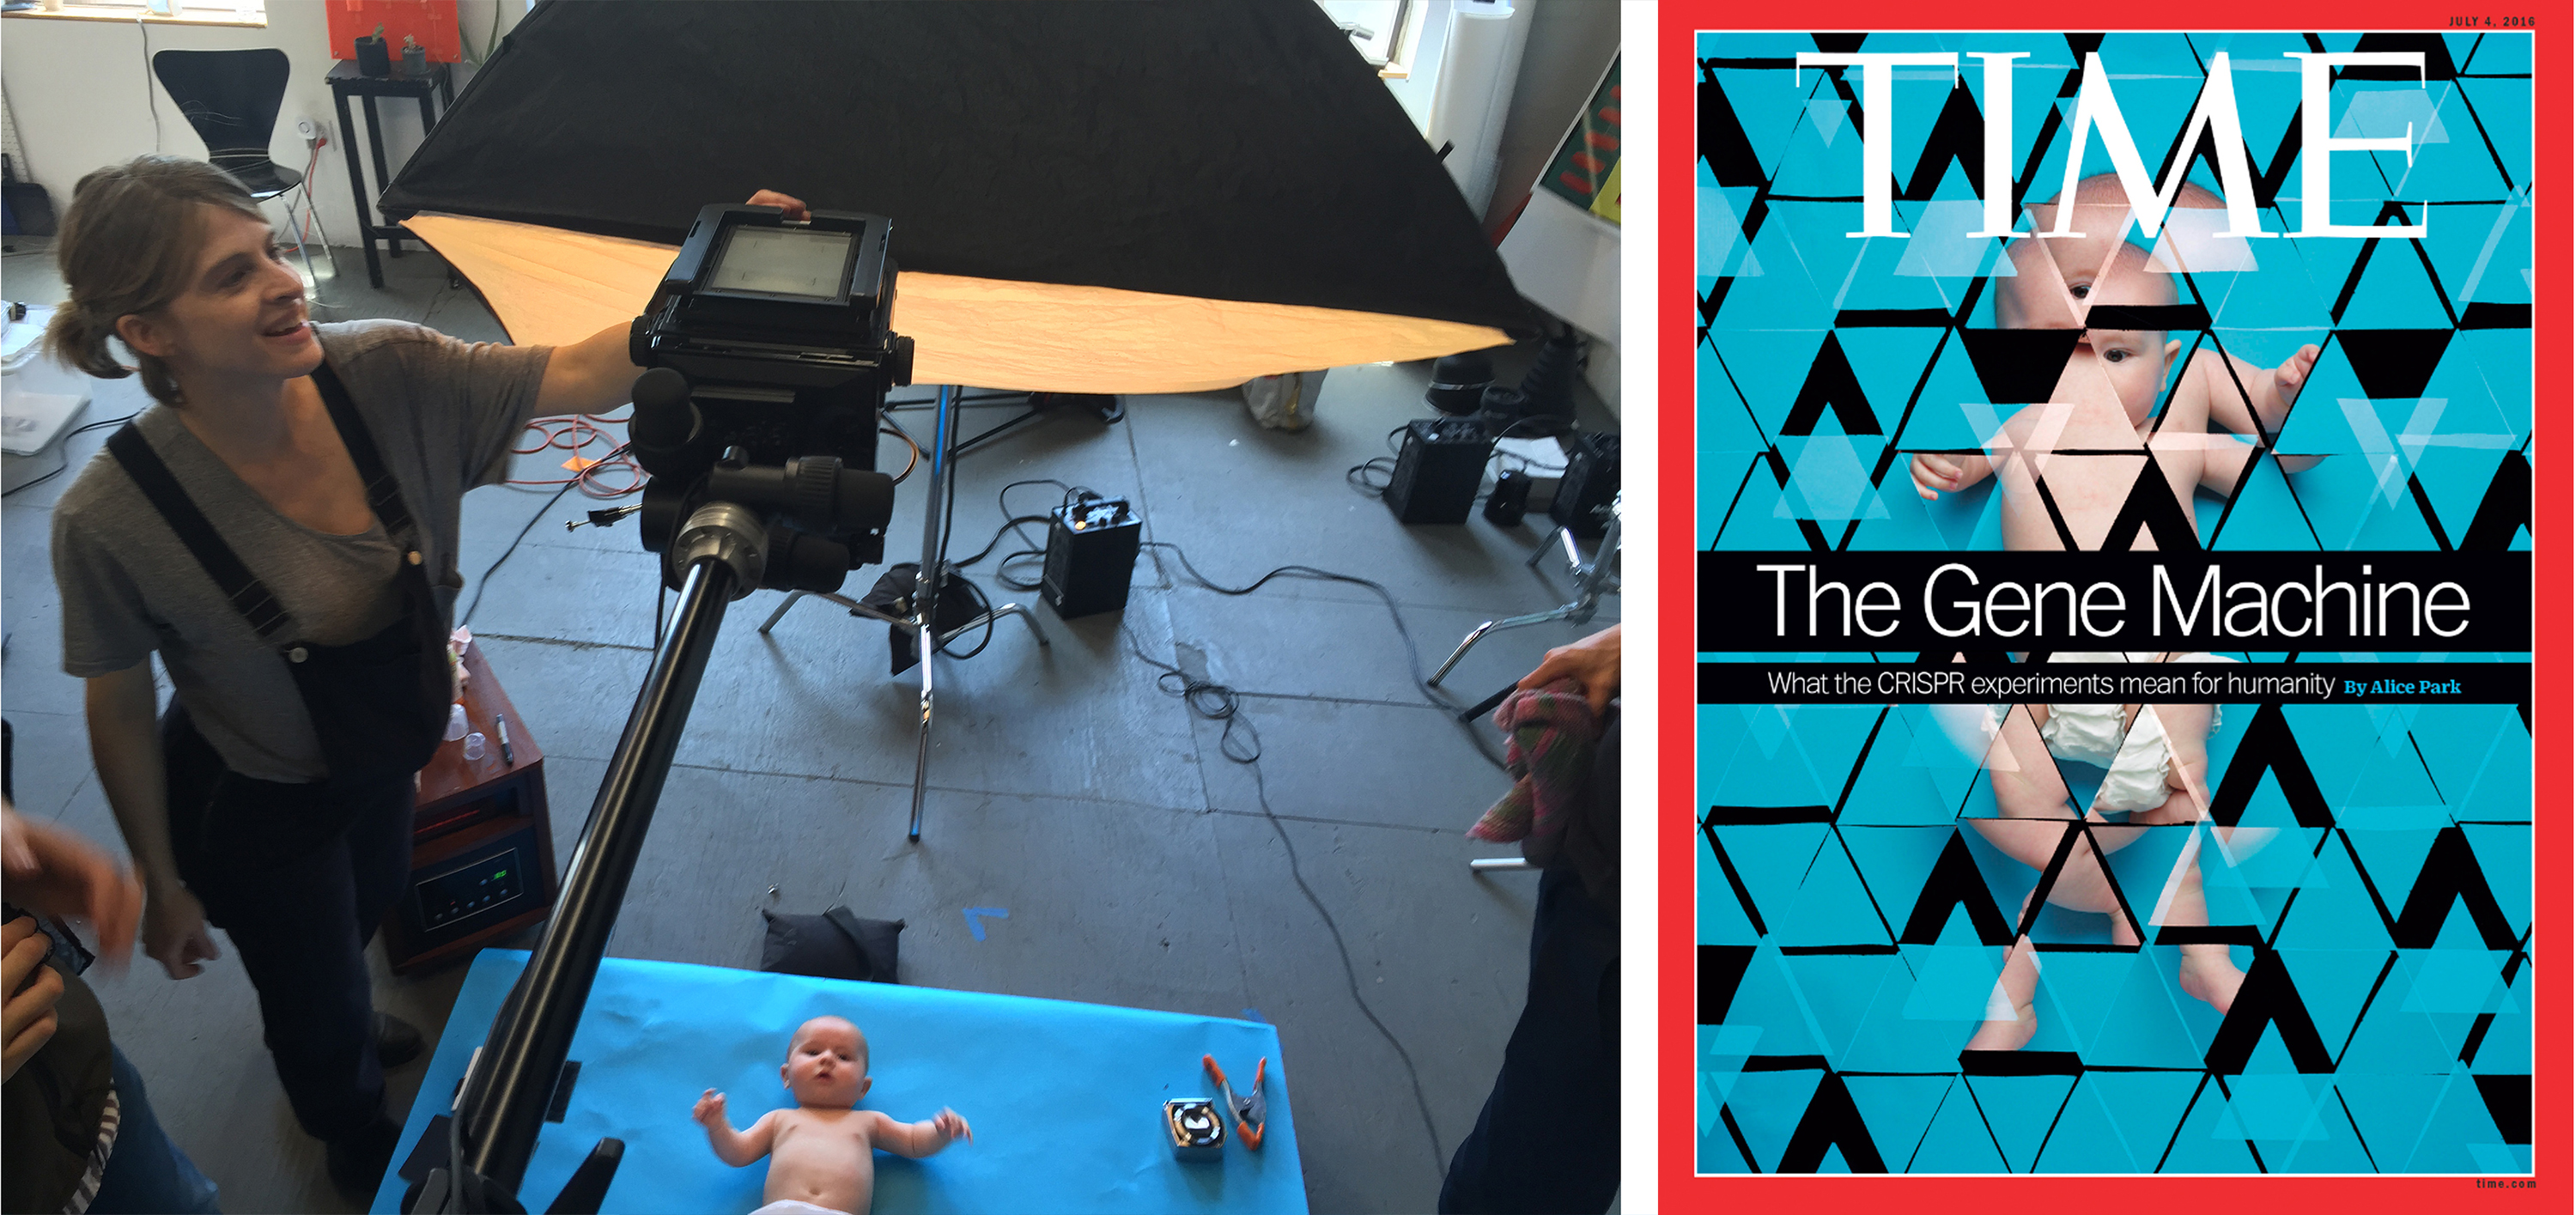 Left to right: Behind the scenes photo from the TIME shoot, Whitaker's cover for TIME Magazine.